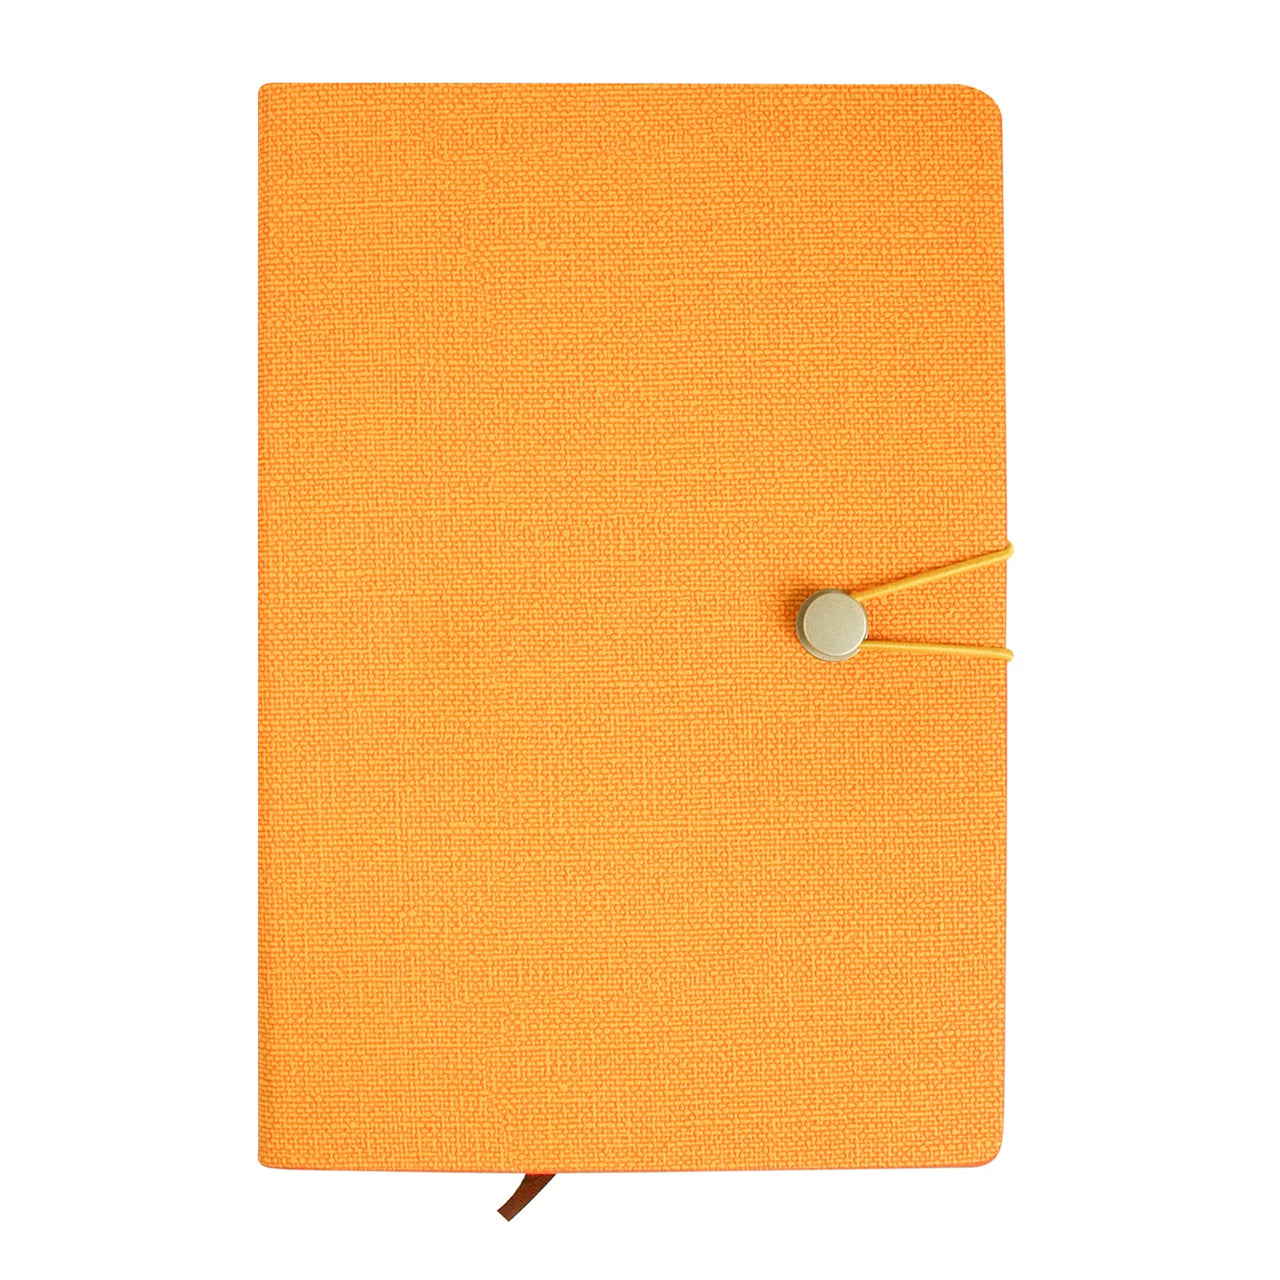 A5 PU Leather Hardbound Notebook - Orange - EMARTBUY